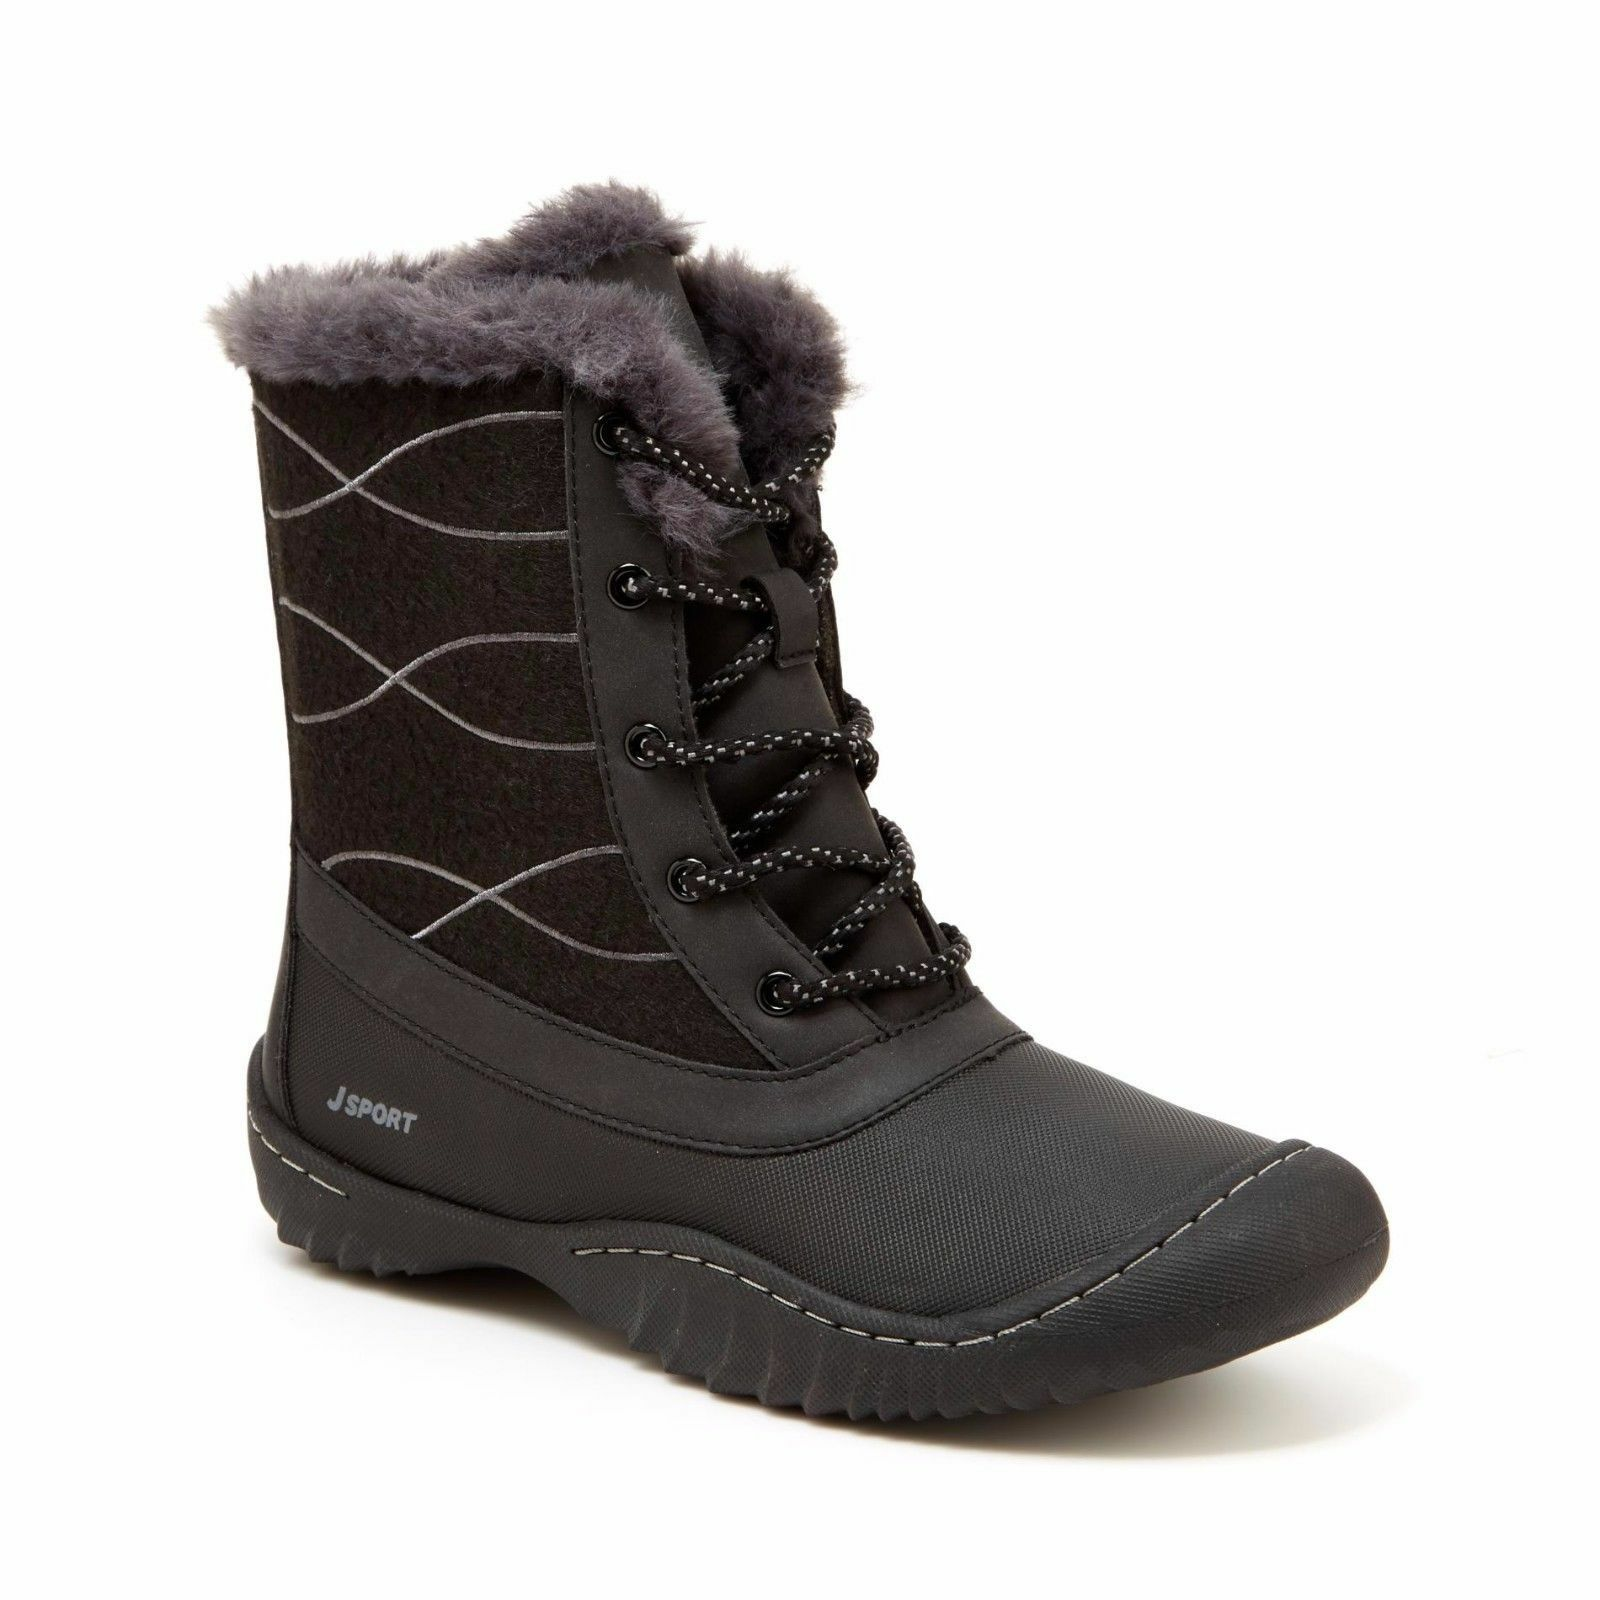 Size 7.5 Jambu Womens Boot shoes  Lastpair  Reg 140.00 Sale 64.99